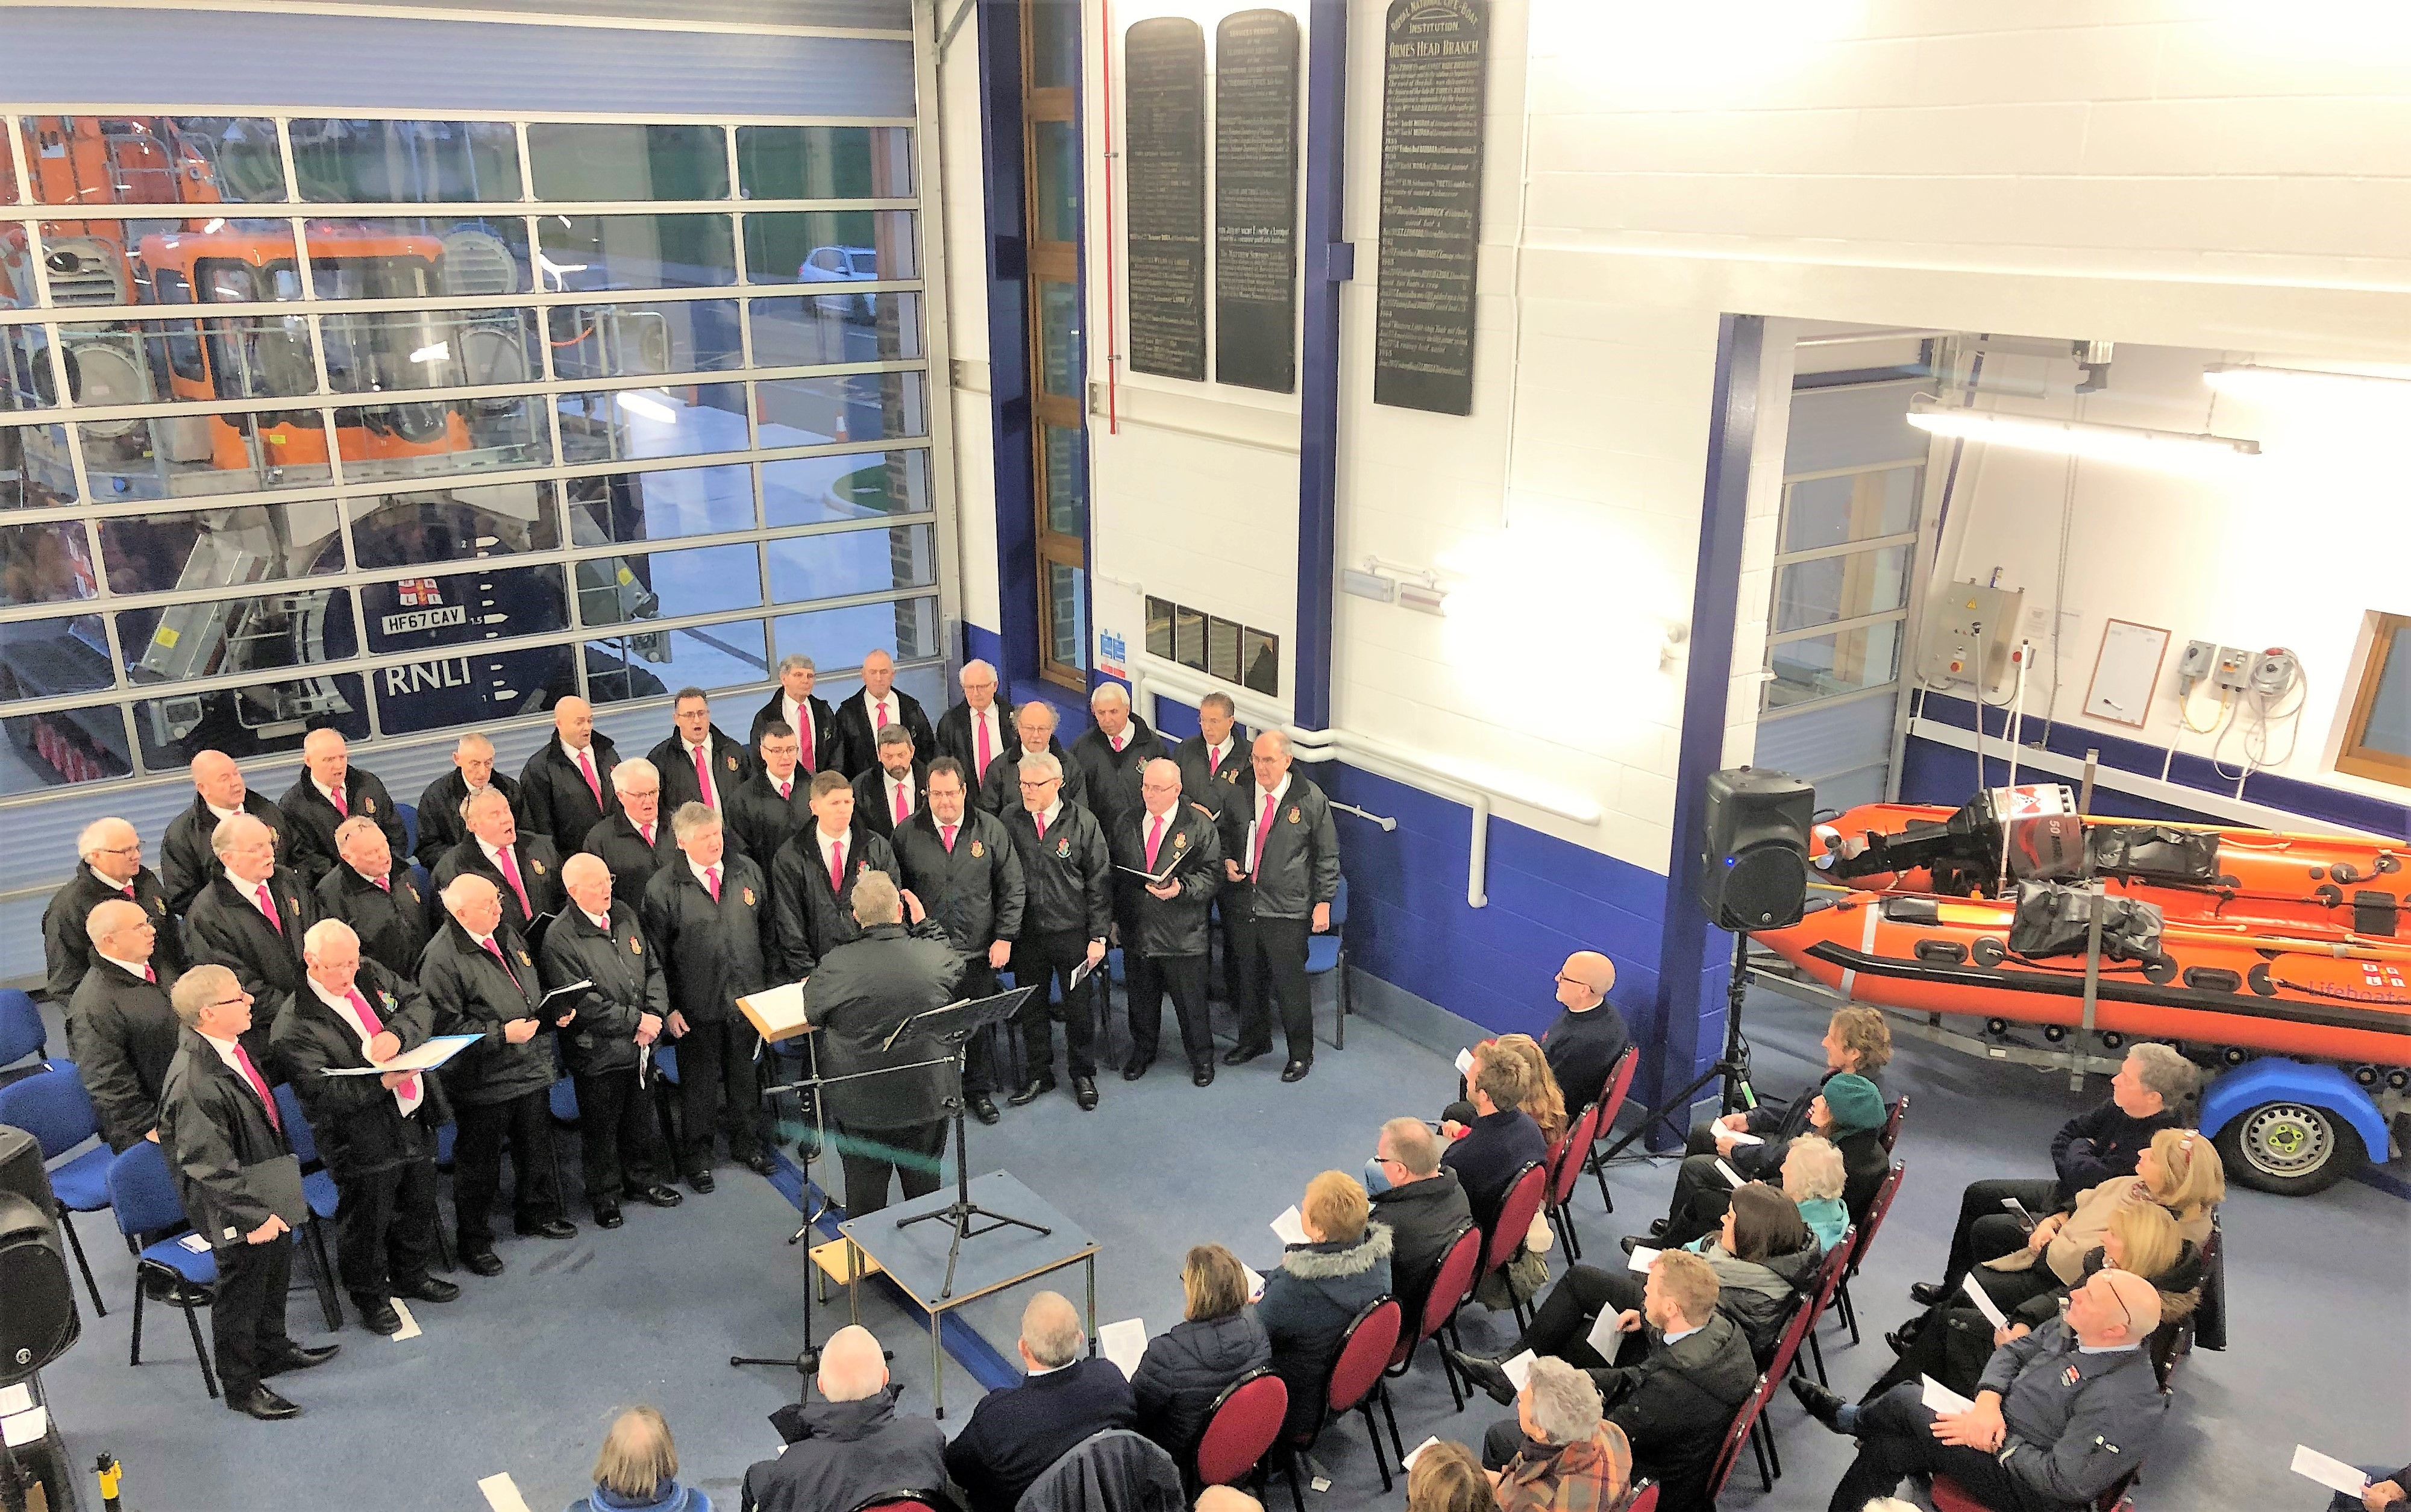 , Llandudno lifeboat station successfully hosted a Christmas Service at the new boathouse in Craig-y-Don. The Llandudno RNLI family were delighted to be also joined by Côr Meibion Colwyn in this early celebration of Christmas.